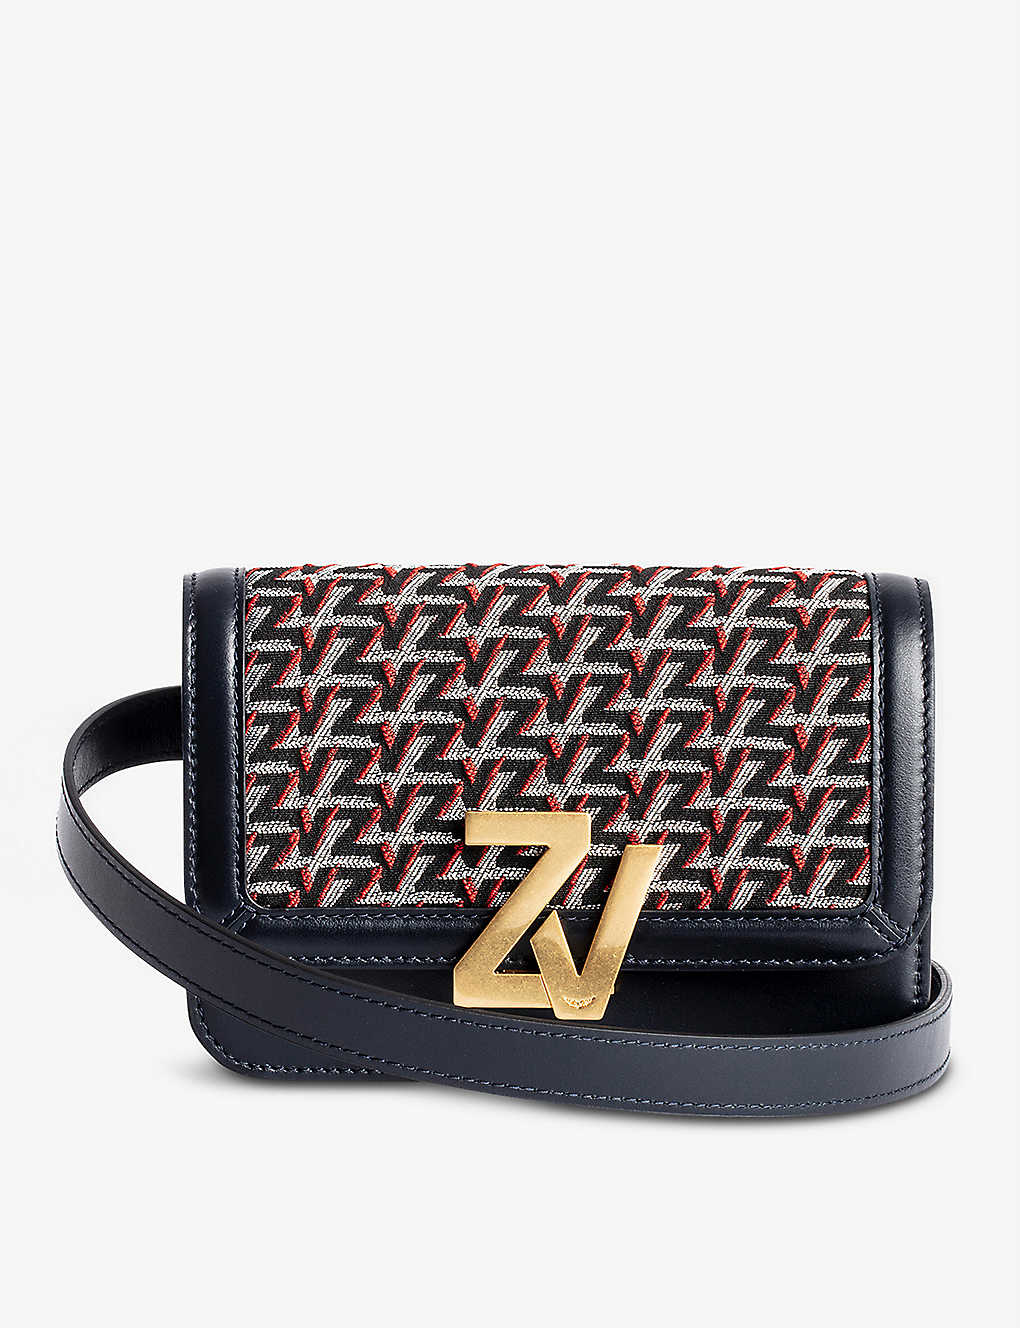 ZADIG&VOLTAIRE: ZV Initiale Le Tote leather monogram cross-body bag